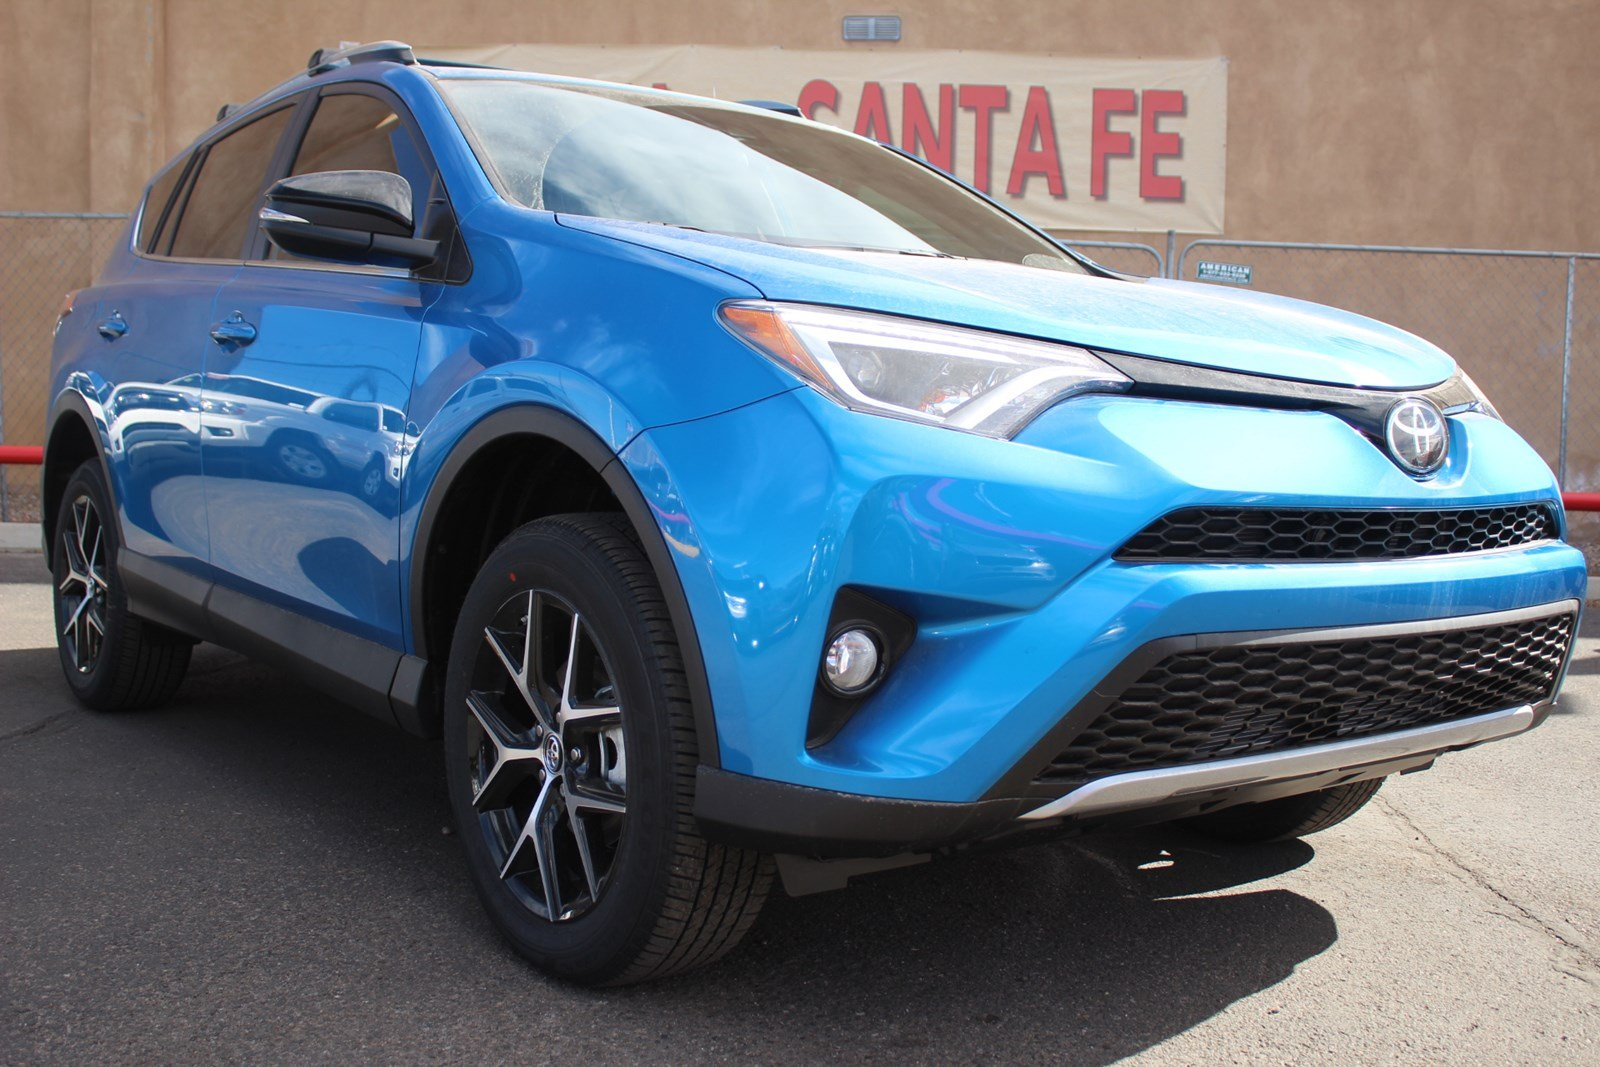 new 2017 toyota rav4 se sport utility vehicle in santa fe hw338562 toyota of santa fe. Black Bedroom Furniture Sets. Home Design Ideas